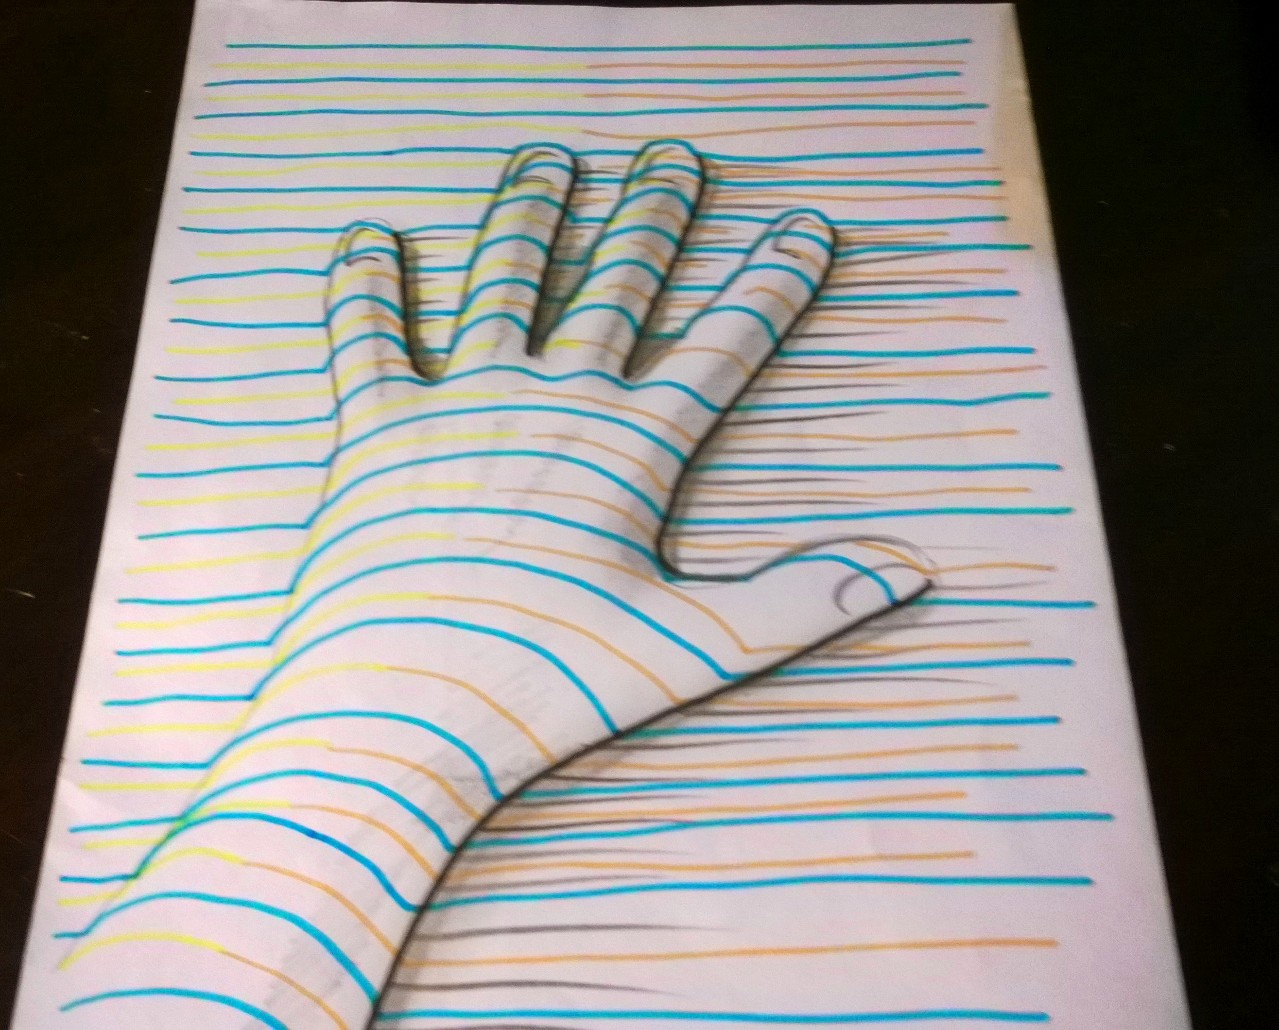 3d Hand By Lineke-Lijn On DeviantArt